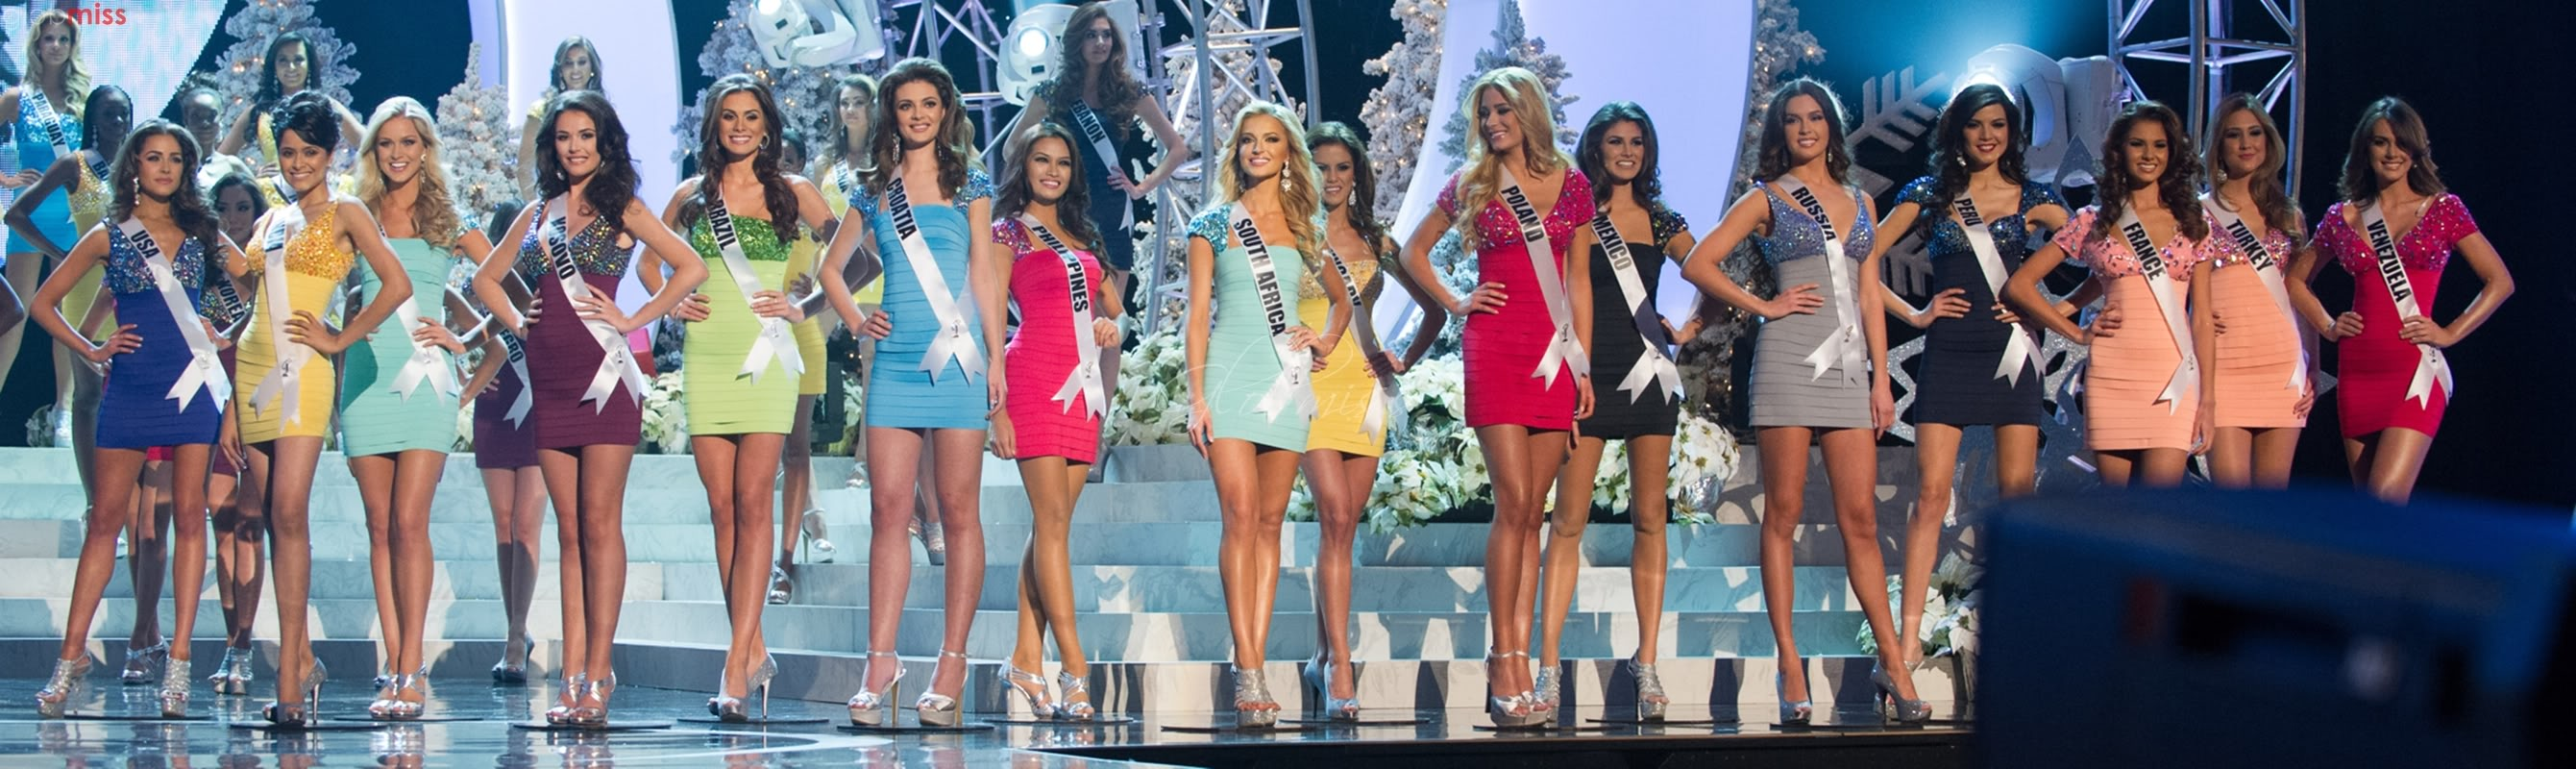 ♔ Official Thread of MISS UNIVERSE® 2012- Olivia Culpo - USA ♔ Miss_poland_universe_2012_marcelina_zawadzka_globmiss_185